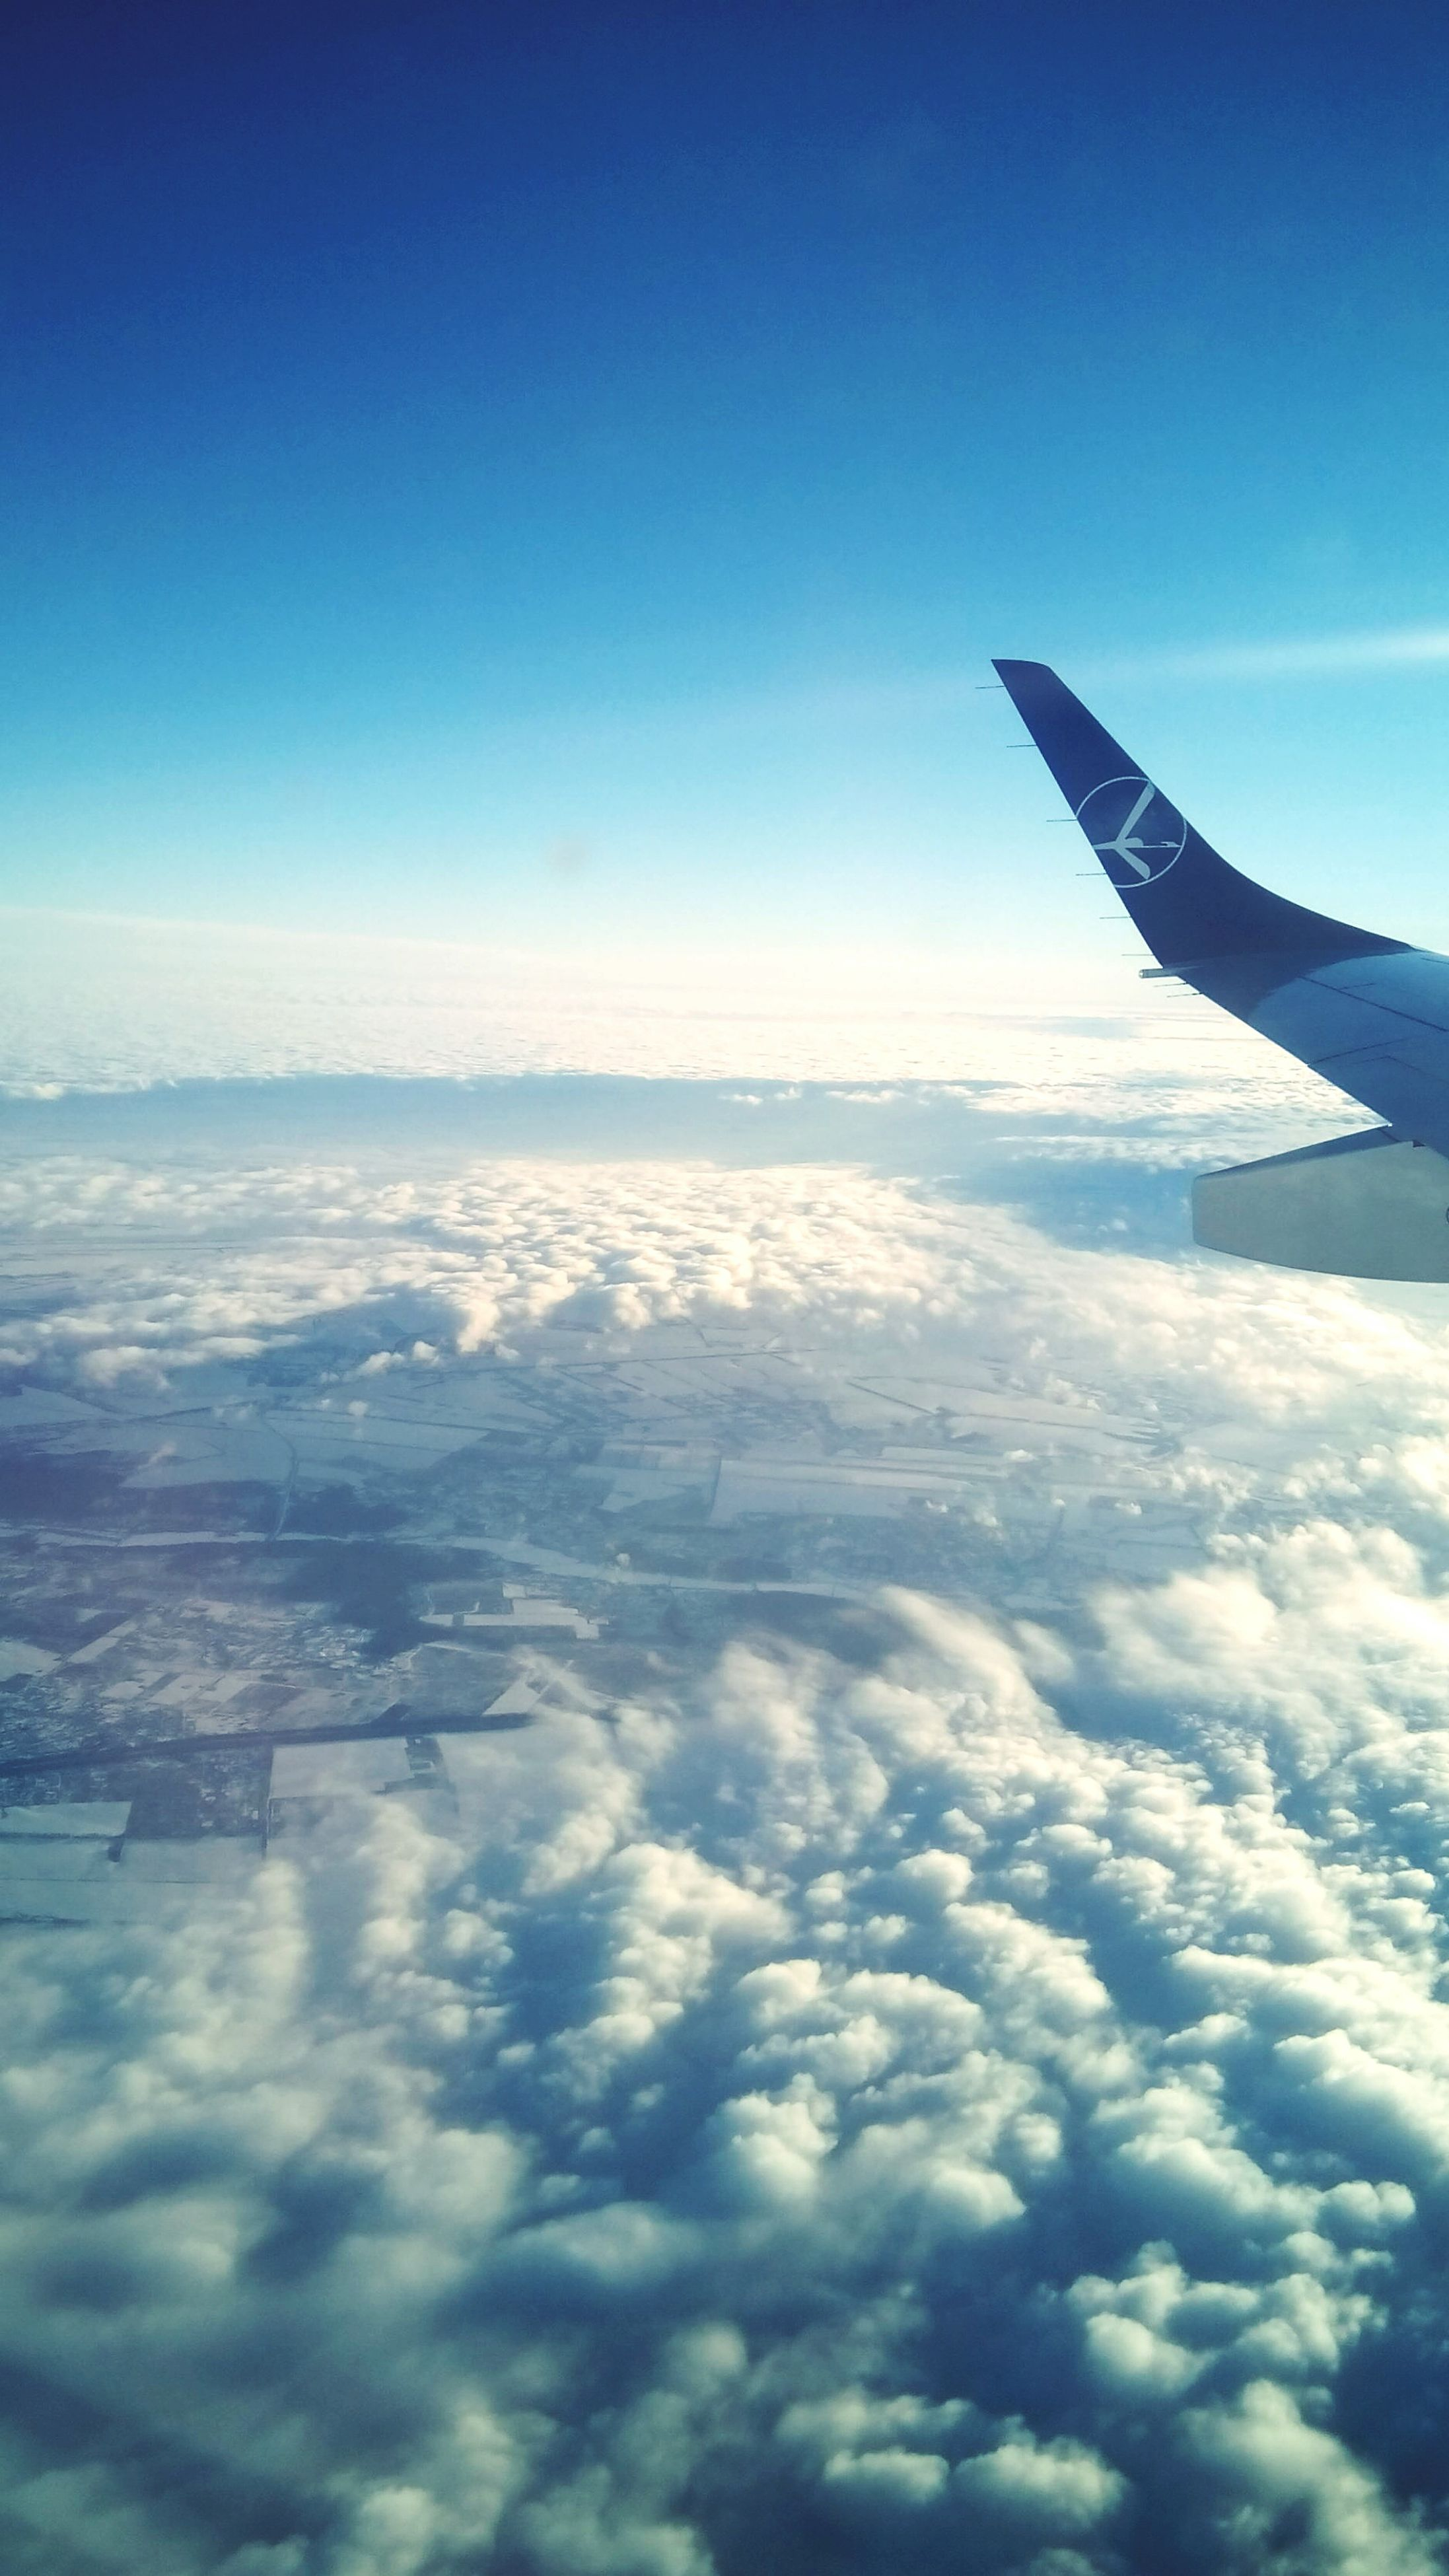 airplane, flying, aircraft wing, air vehicle, blue, aerial view, sky, beauty in nature, scenics, snow, landscape, part of, nature, tranquil scene, travel, tranquility, mid-air, winter, cropped, transportation